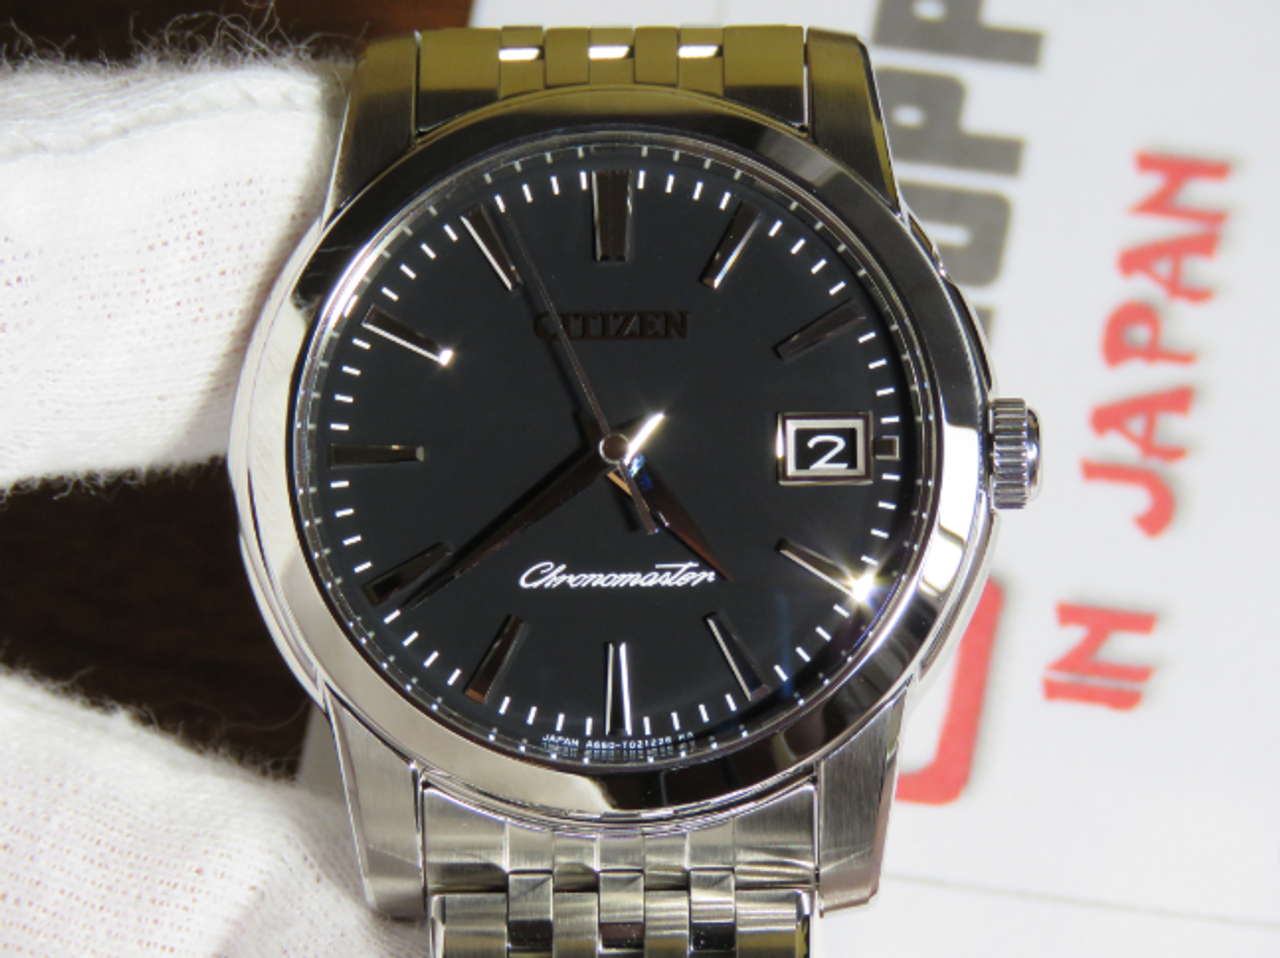 Citizen CTQ57-1202 Chronomaster